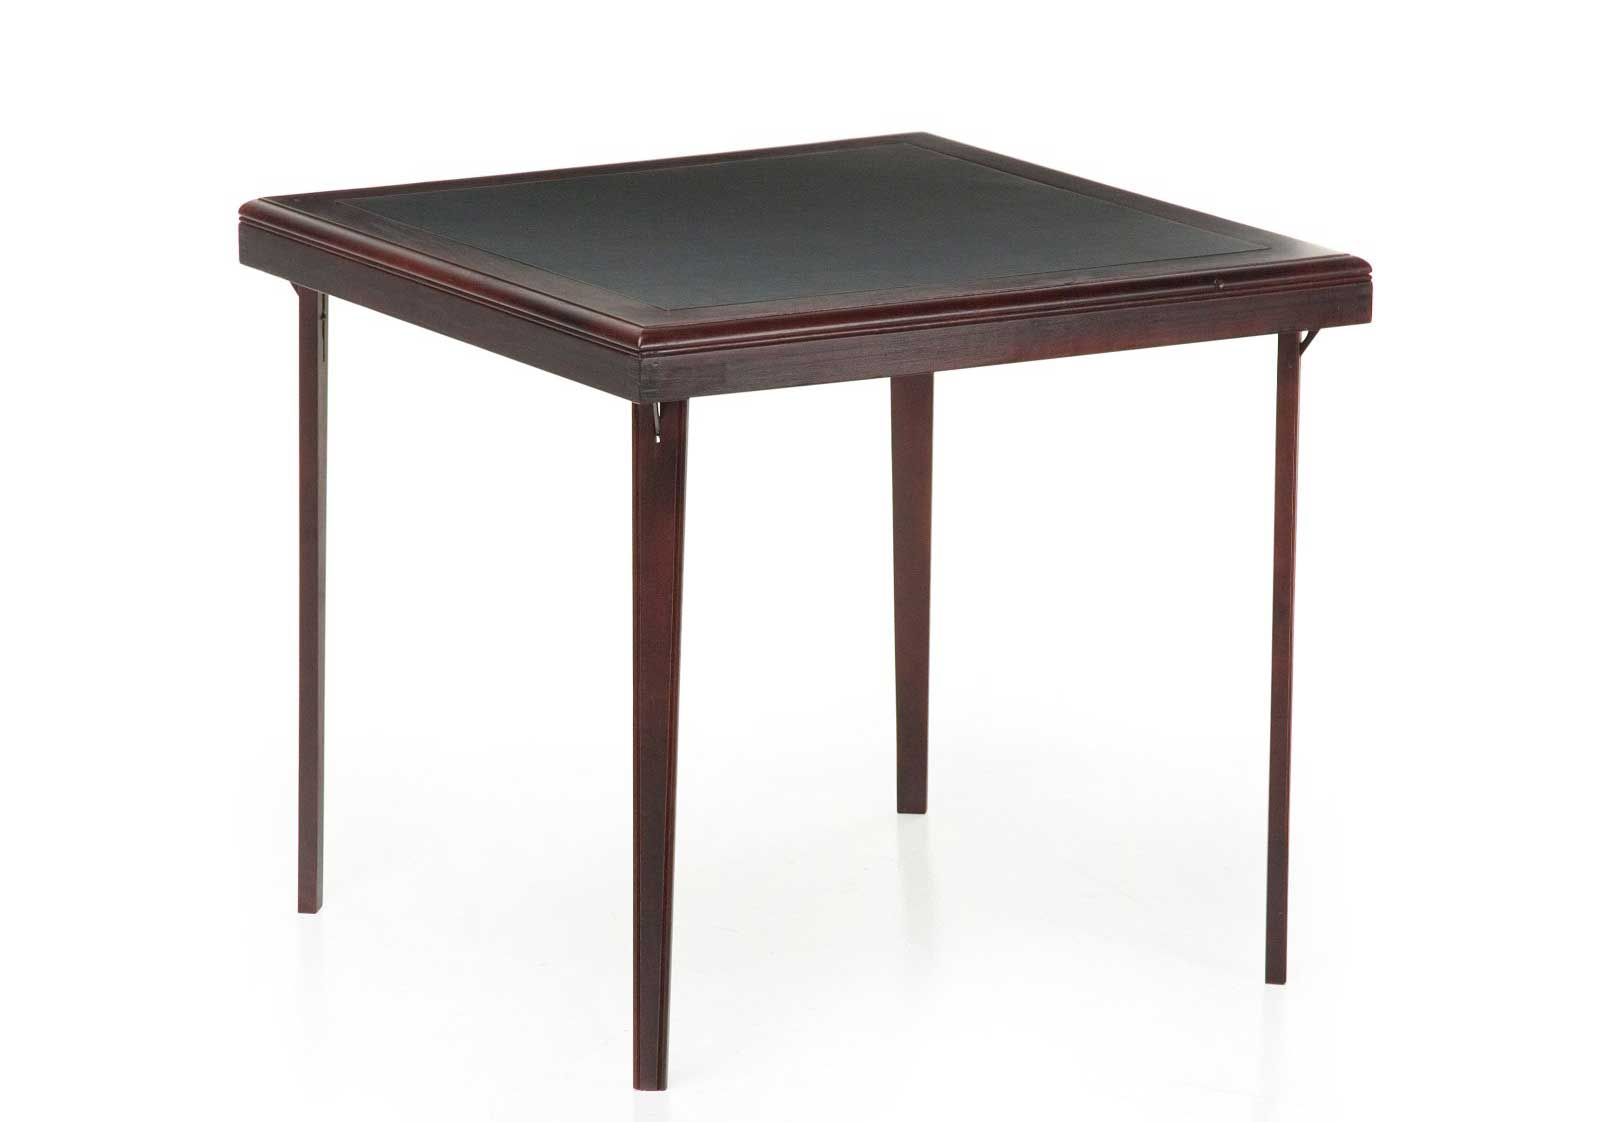 Image of: Premium Square Folding Wood Table